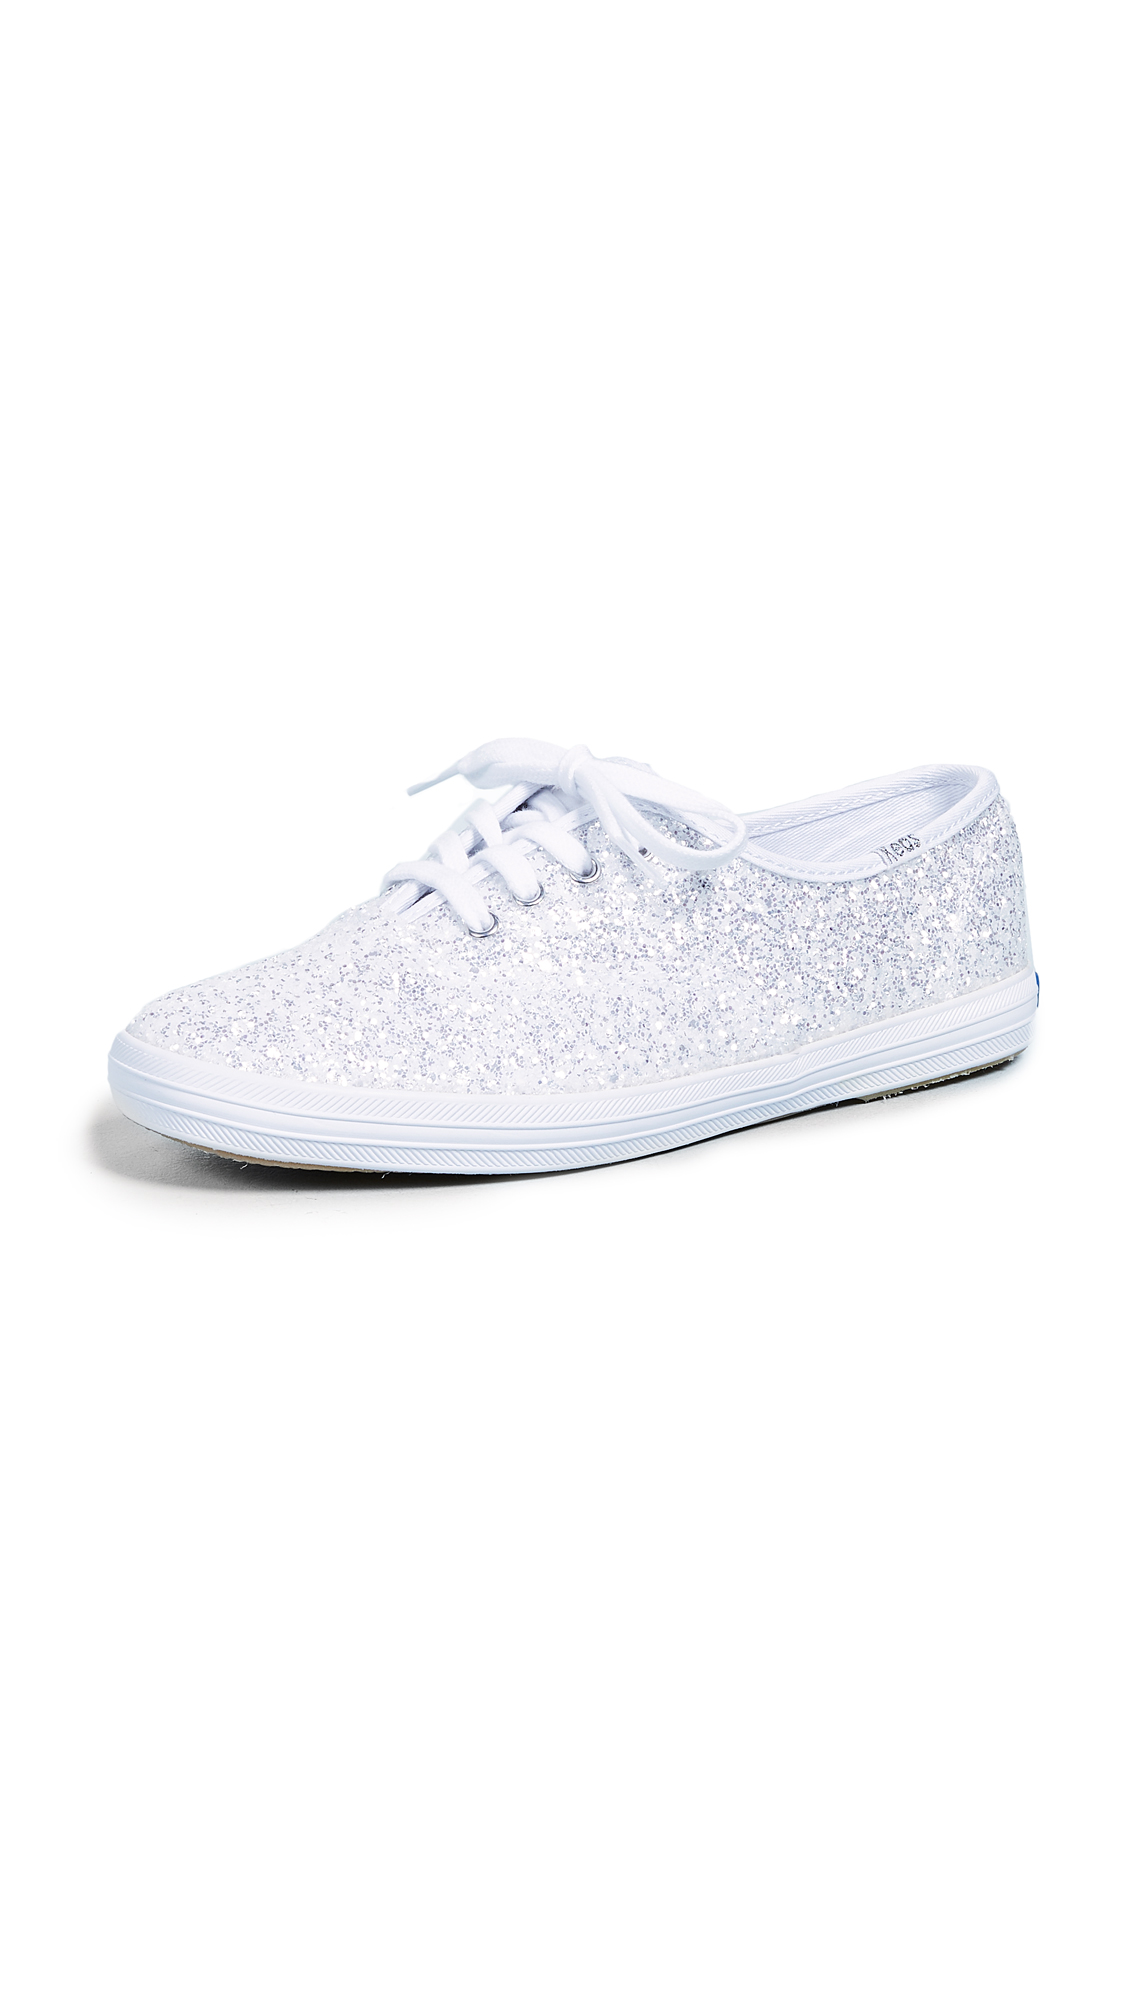 Keds x Kate Spade Champion Sneakers In White